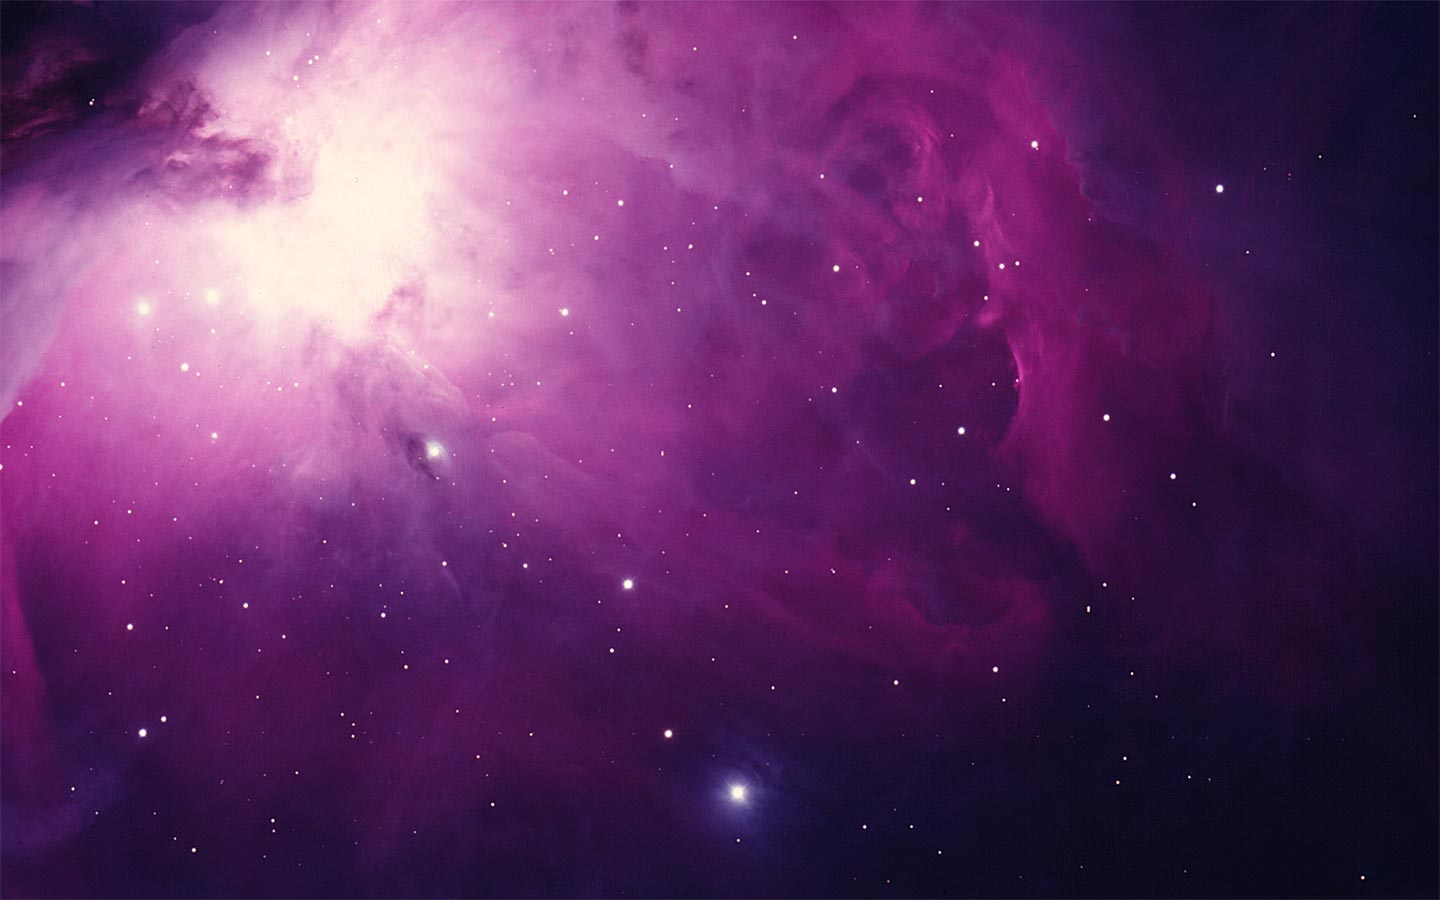 Outer space stars nebulae wallpaper 1440x900 182002 - Space wallpaper large ...